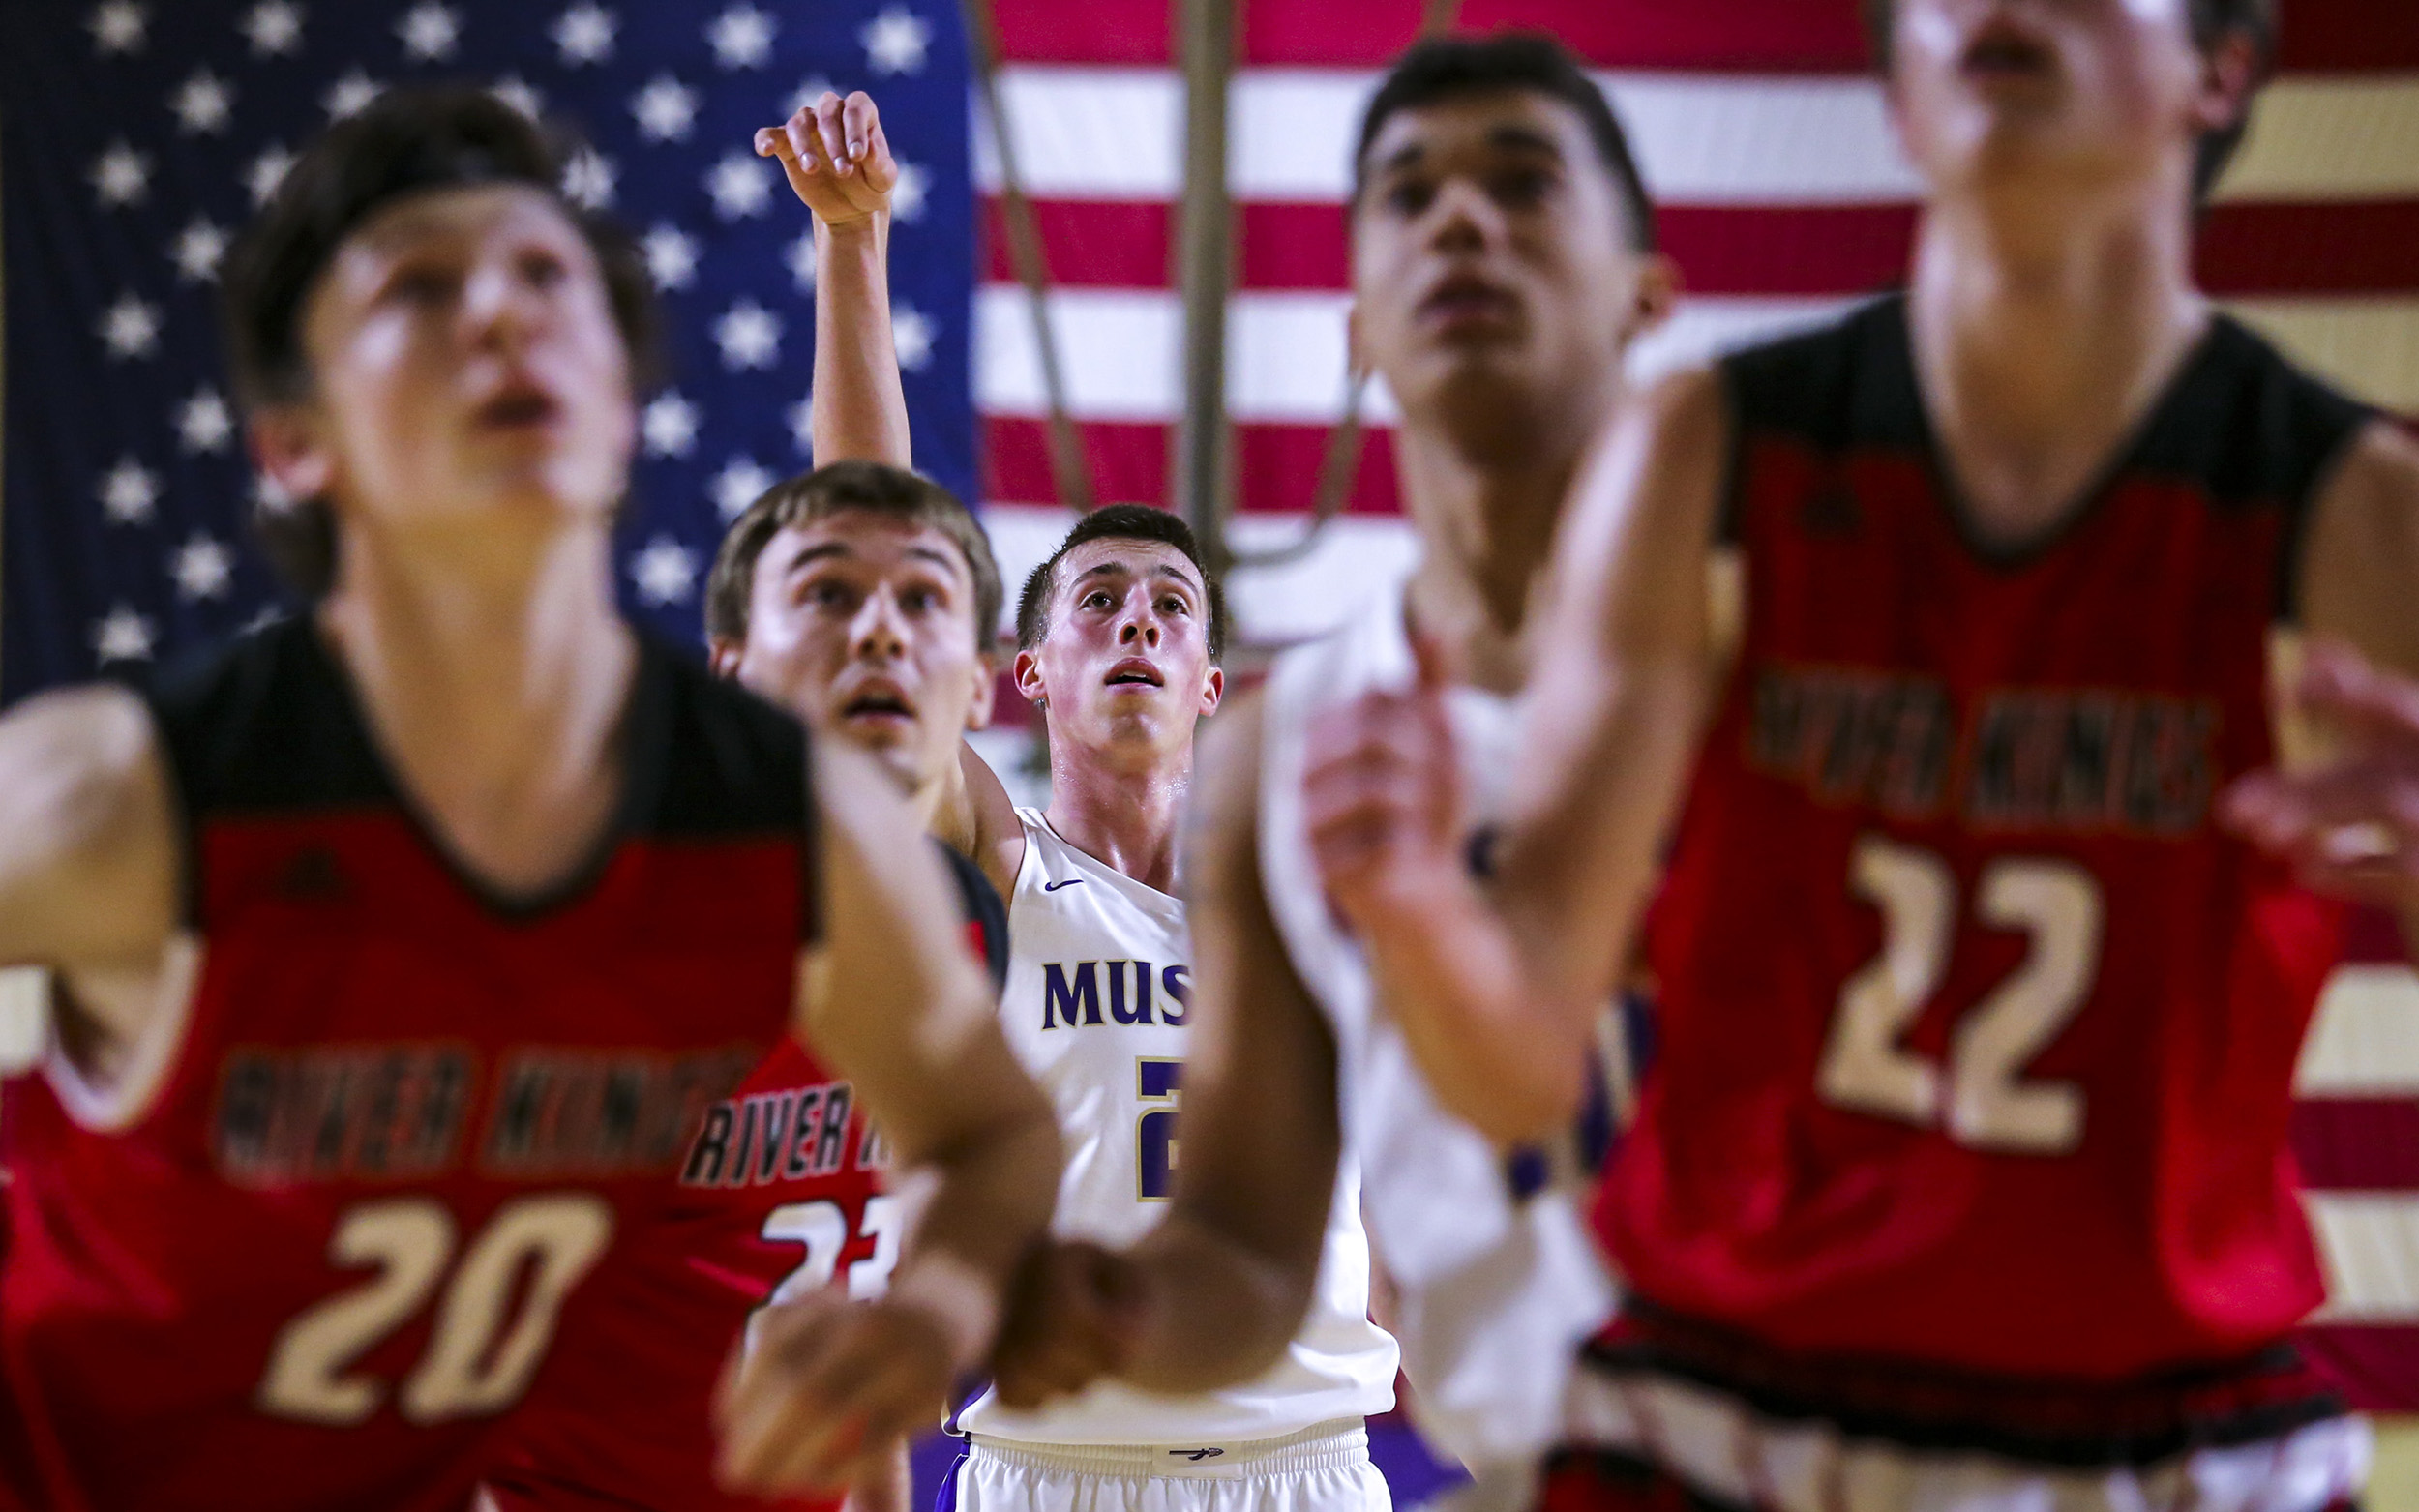 Muscatine's Joe Wieskamp (21) watches after shooting a free throw during the second quarter of their game at Muscatine High School, Tuesday, Jan. 23, 2018.